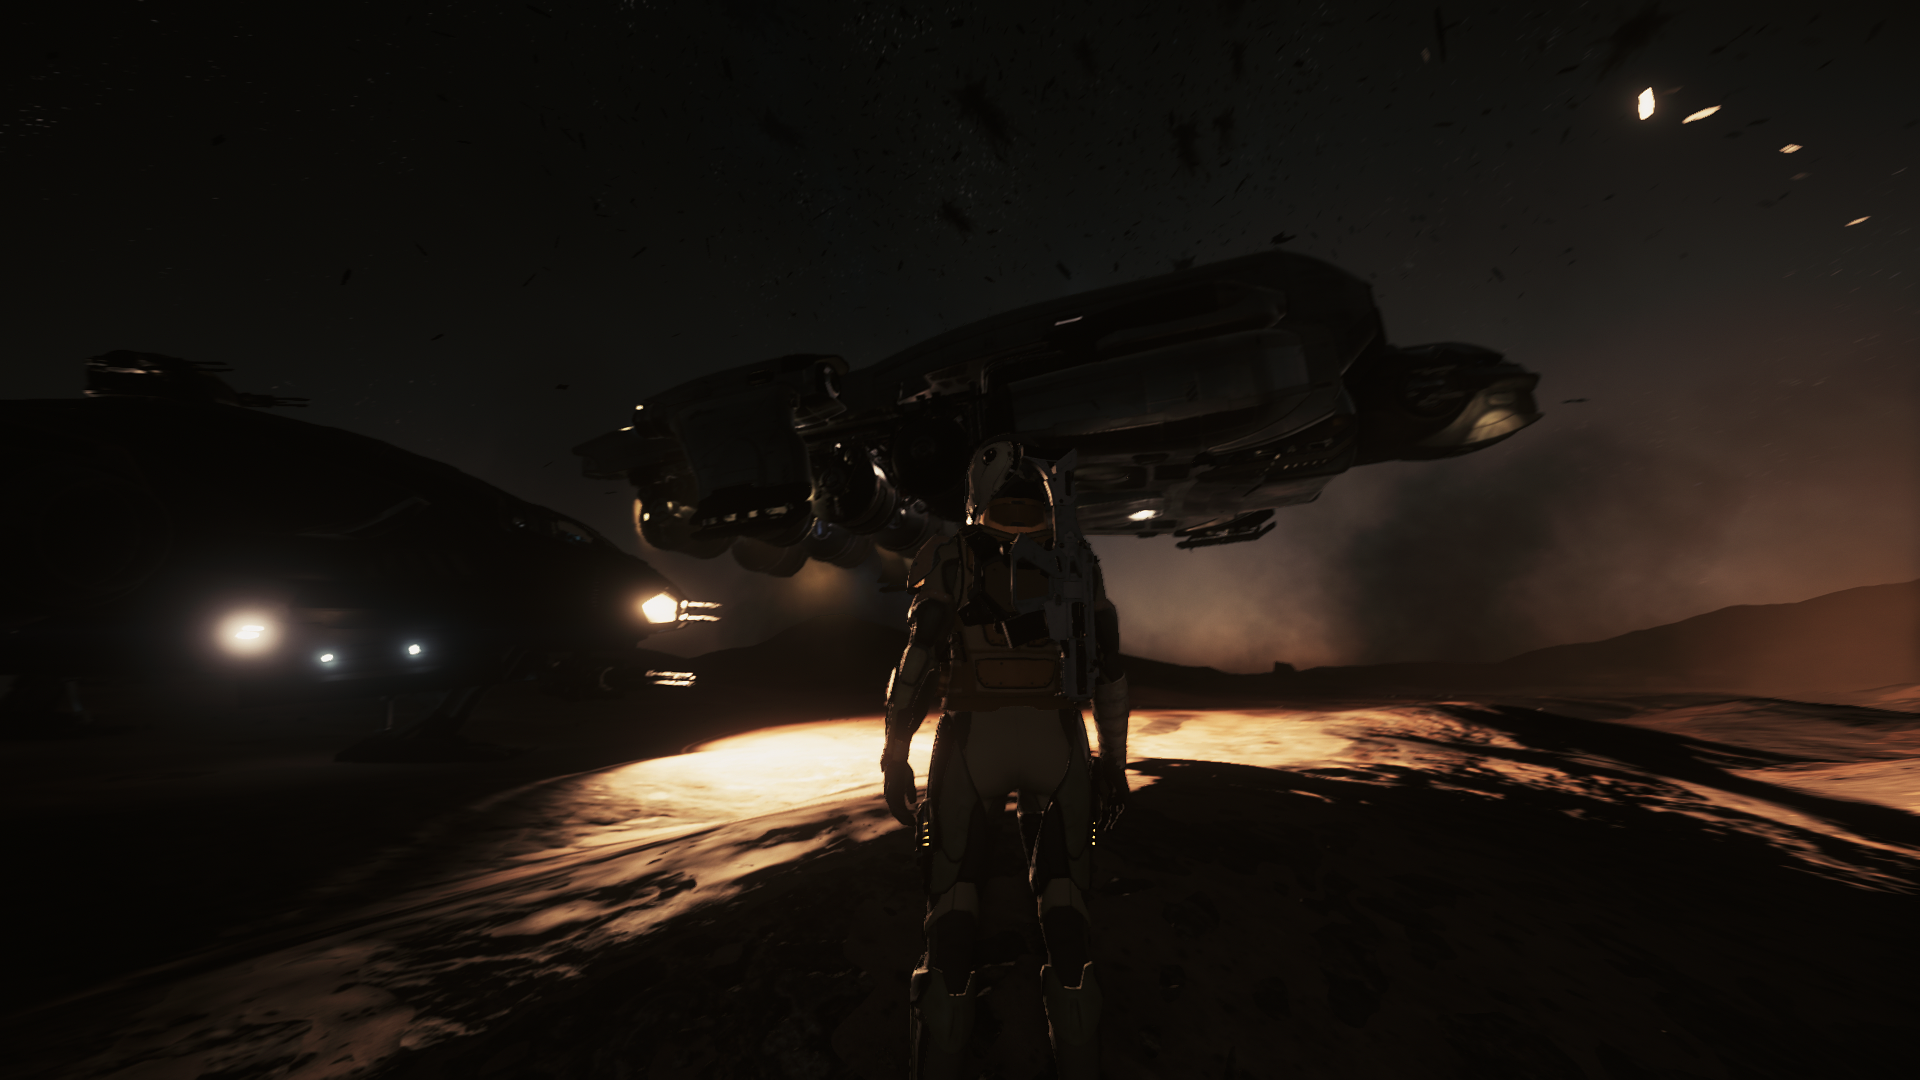 Daymar Rally teams will need to rely on their own resources for their logistical needs. Refuelers like the Starfarer will play an important role!